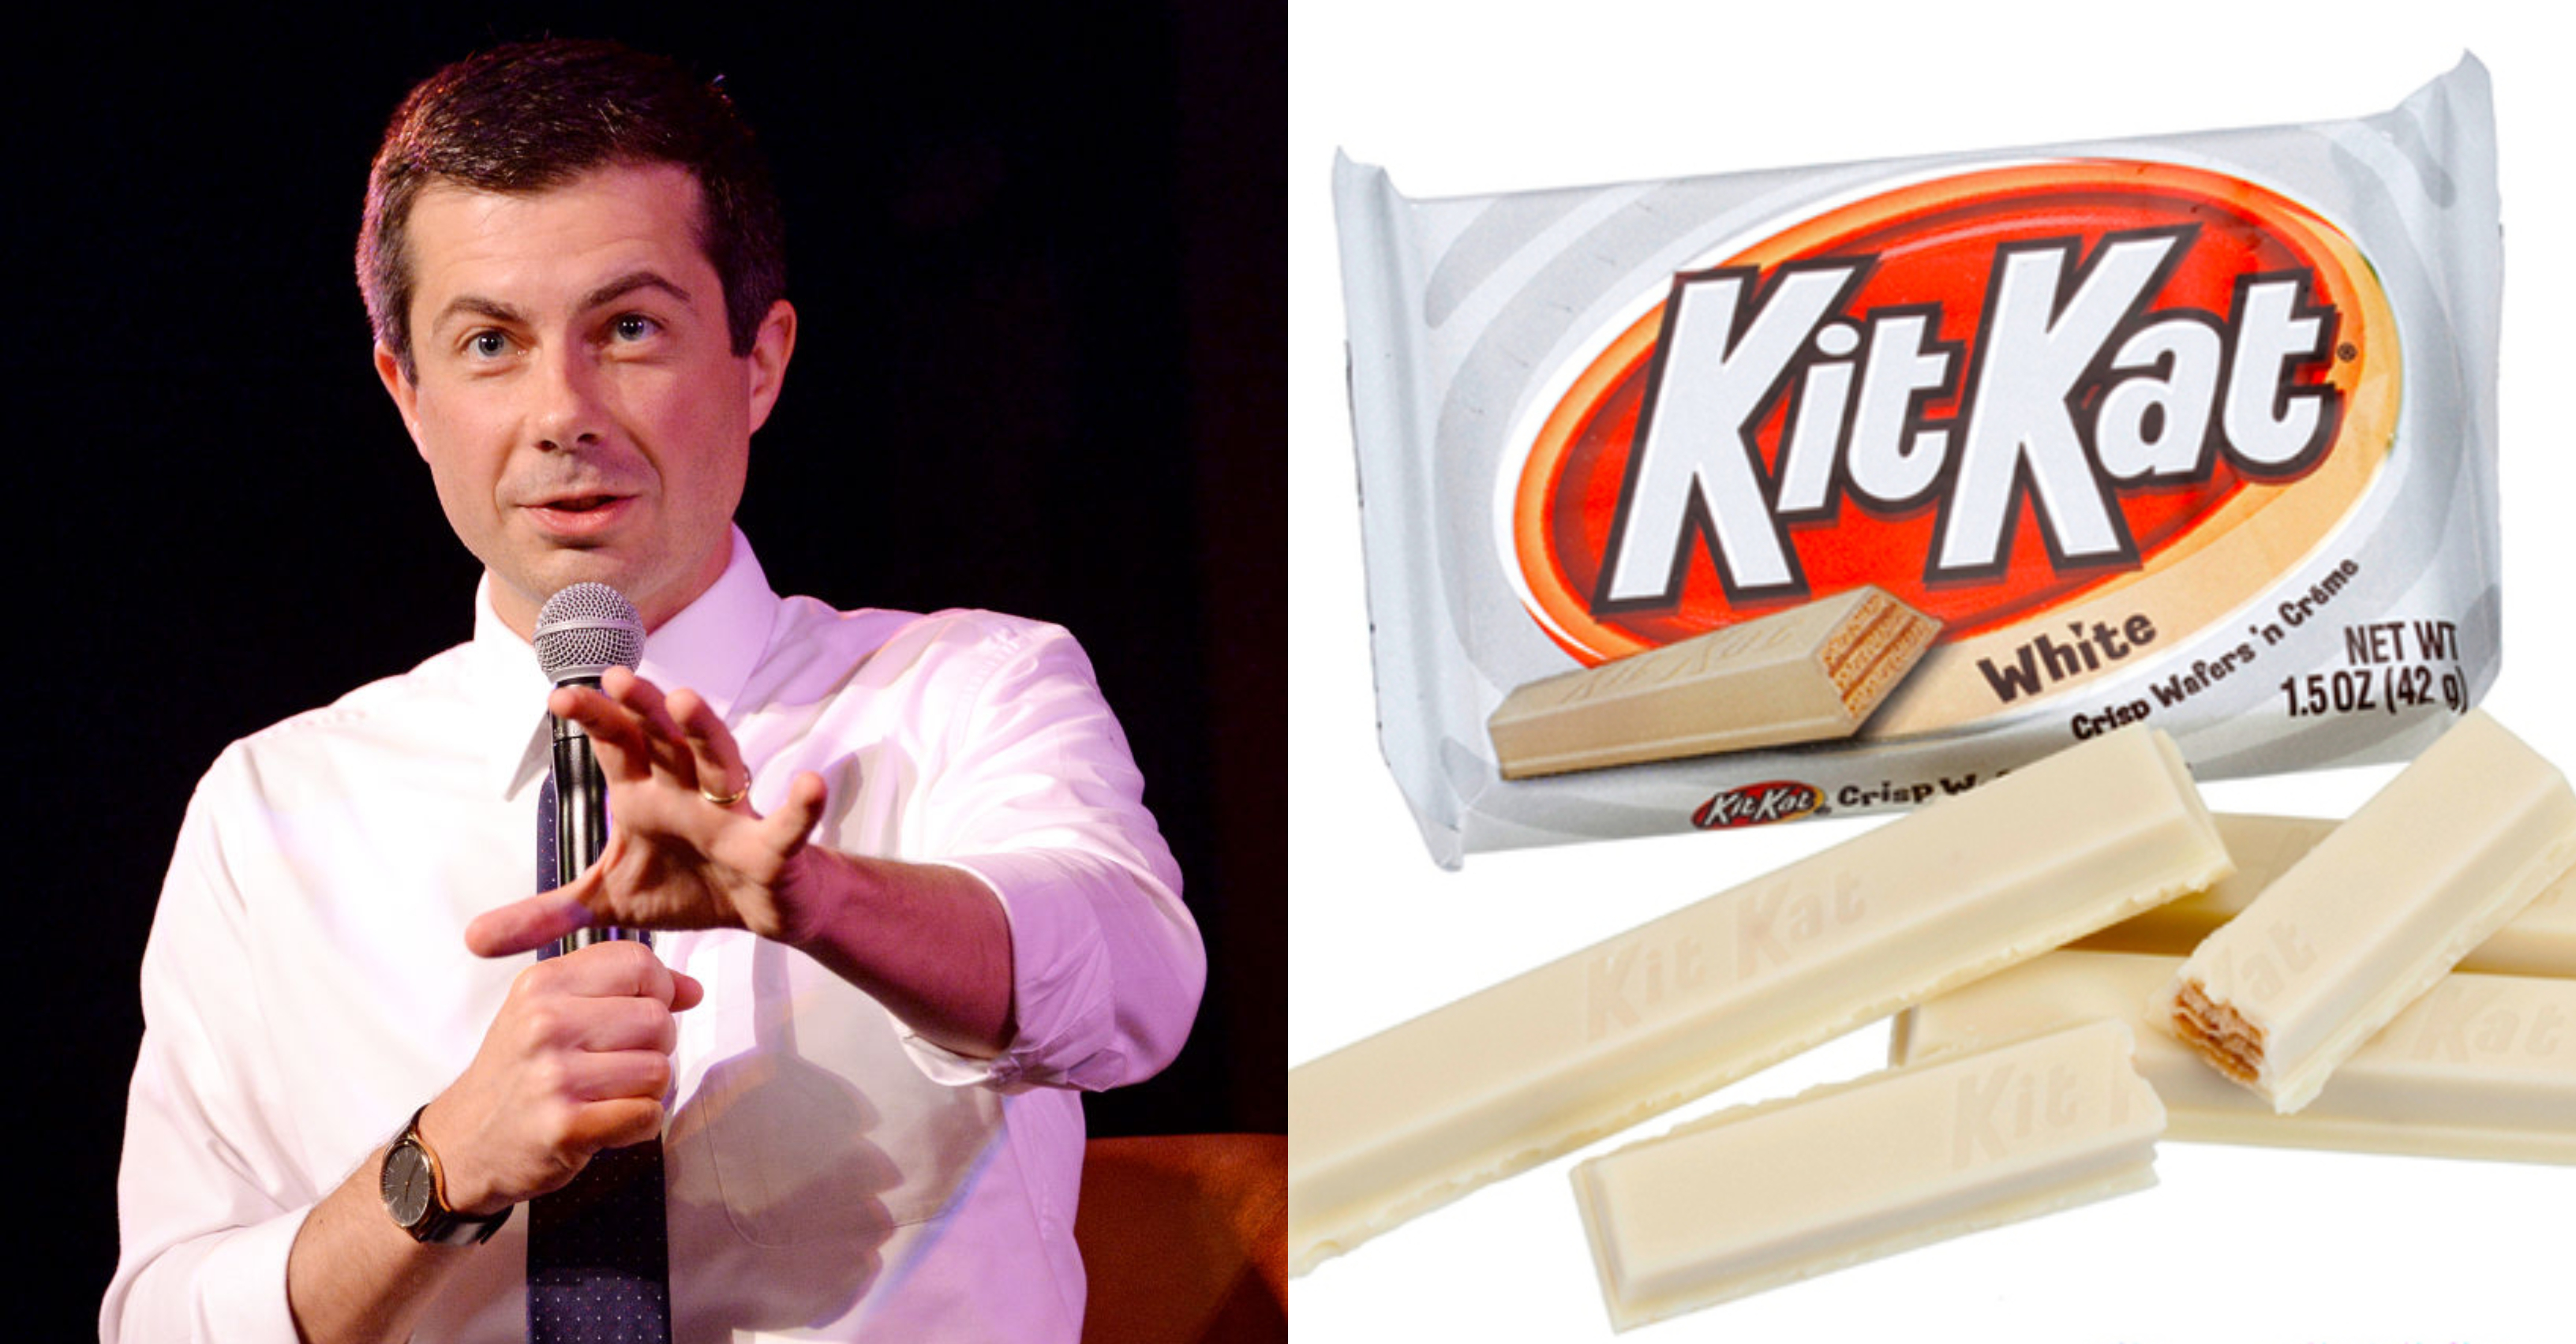 Pete Buttigieg – Kit Kat White Chocolate